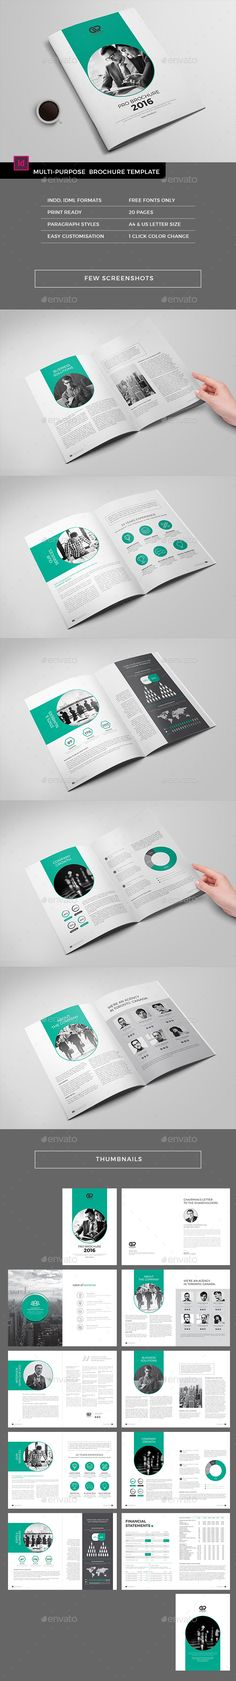 Health Medical Care - Bifold Brochure Template Brochure template - half fold brochure template